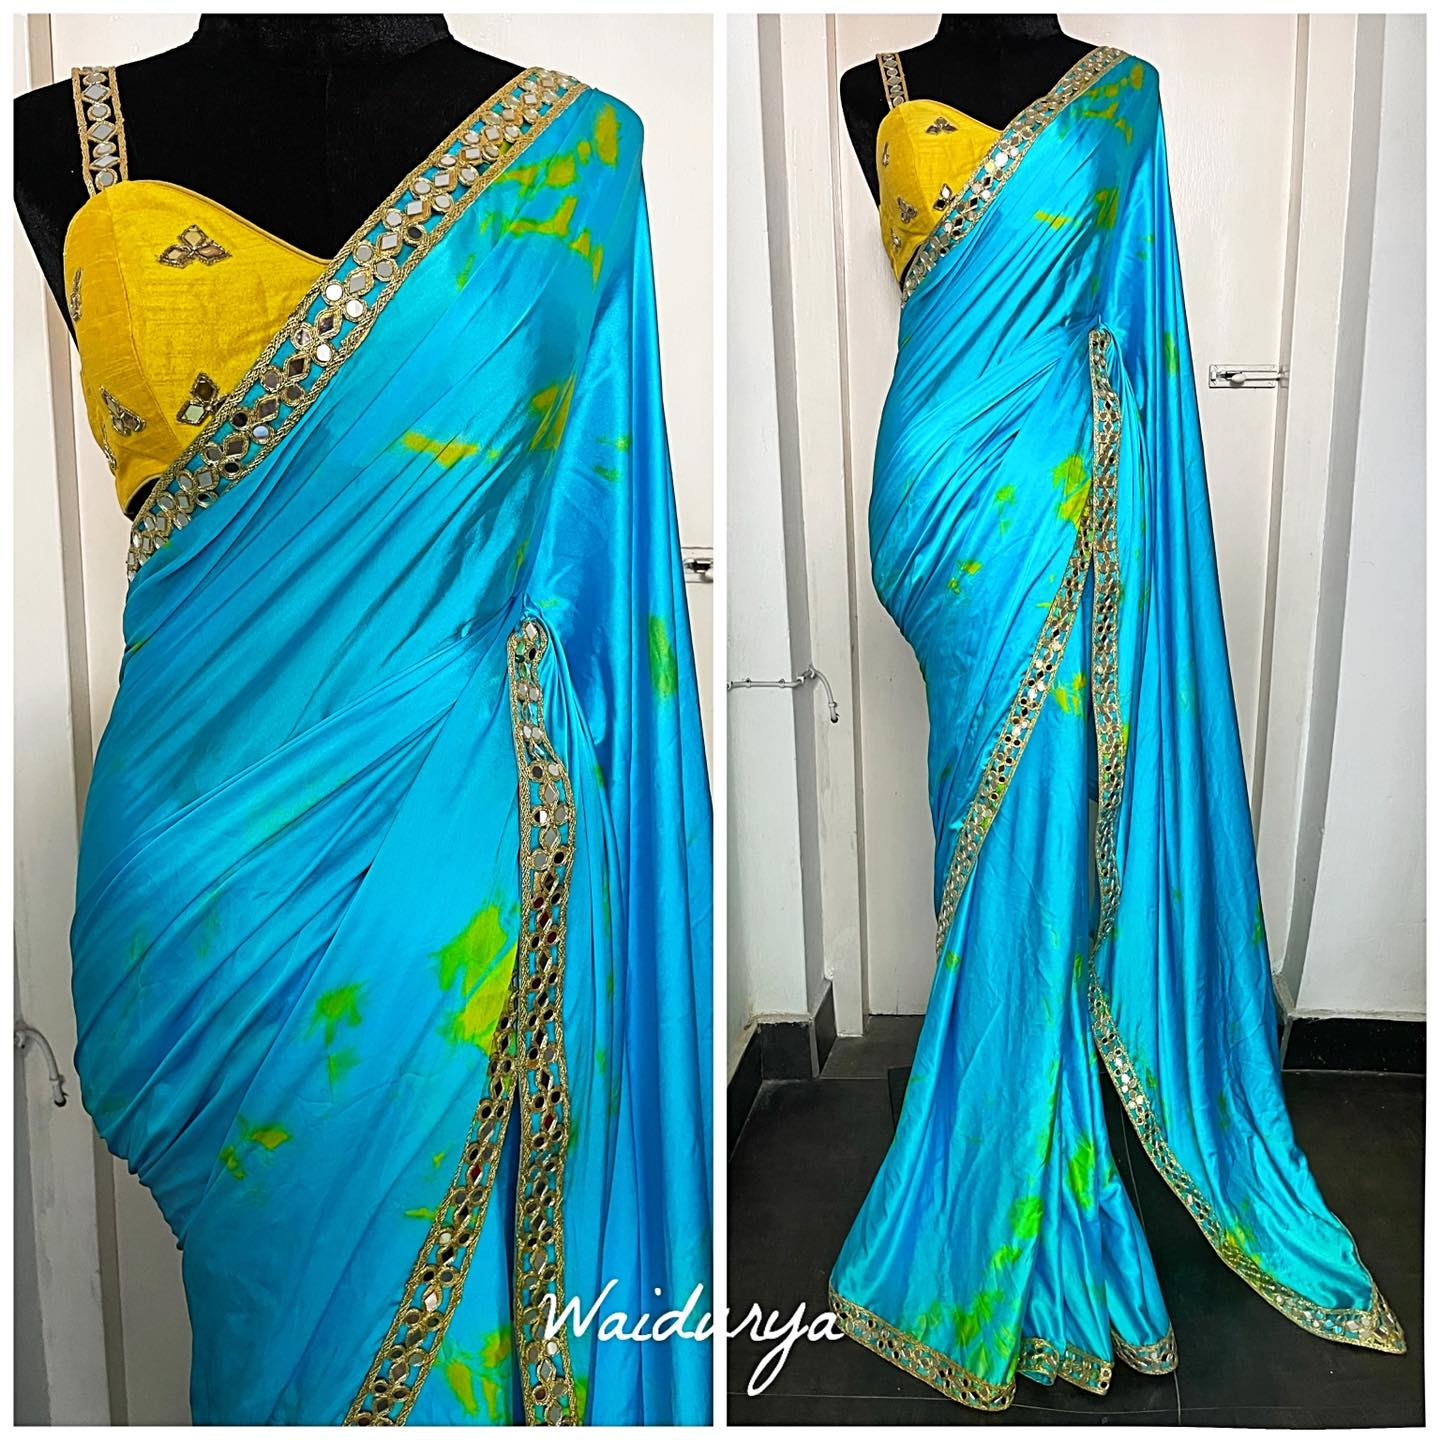 KALLY is the perfect fresh summer pop of color! It's a sky blue tie dye satin georgette with a popping yellow through it. The sari is silly and form flattering. Just drapes beautifully. The borders is a 100% pure mirror work border that is hand made. The blouse is a canary yellow raw silk with mirror work embroidery and pure mirror work straps. Looove this look entirely!!!! 2021-09-01